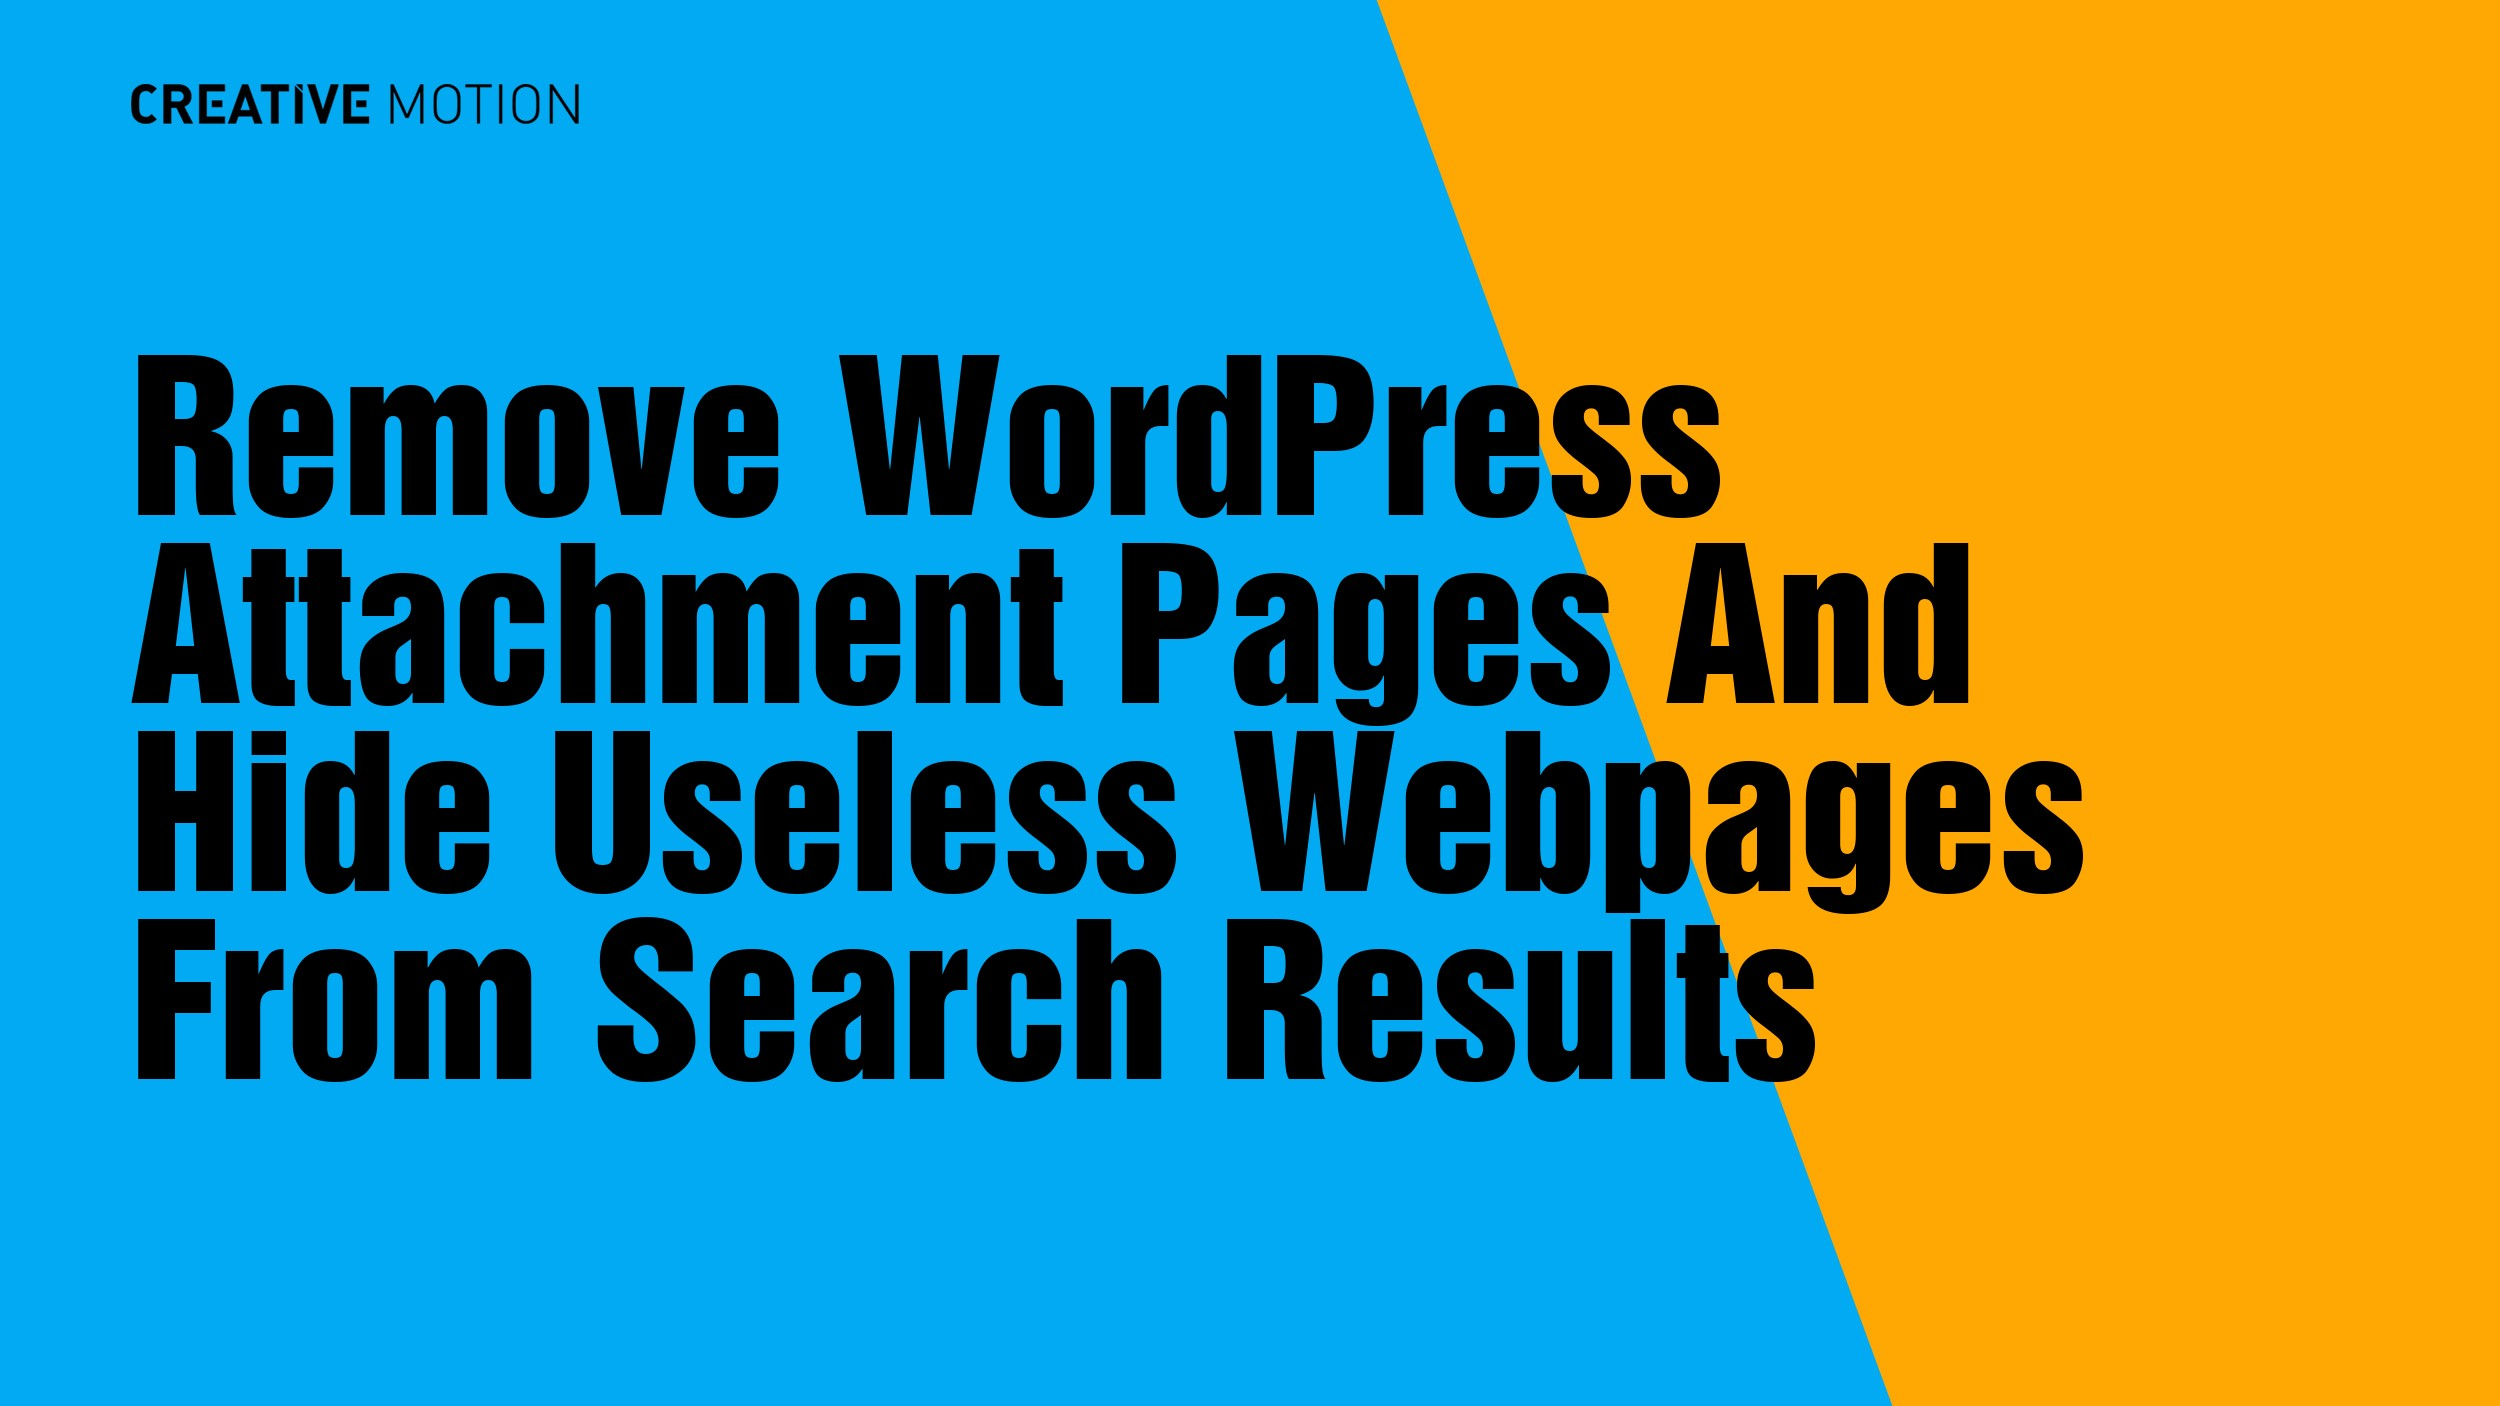 Remove WordPress Attachment Pages And Hide Useless Webpages From Search Results